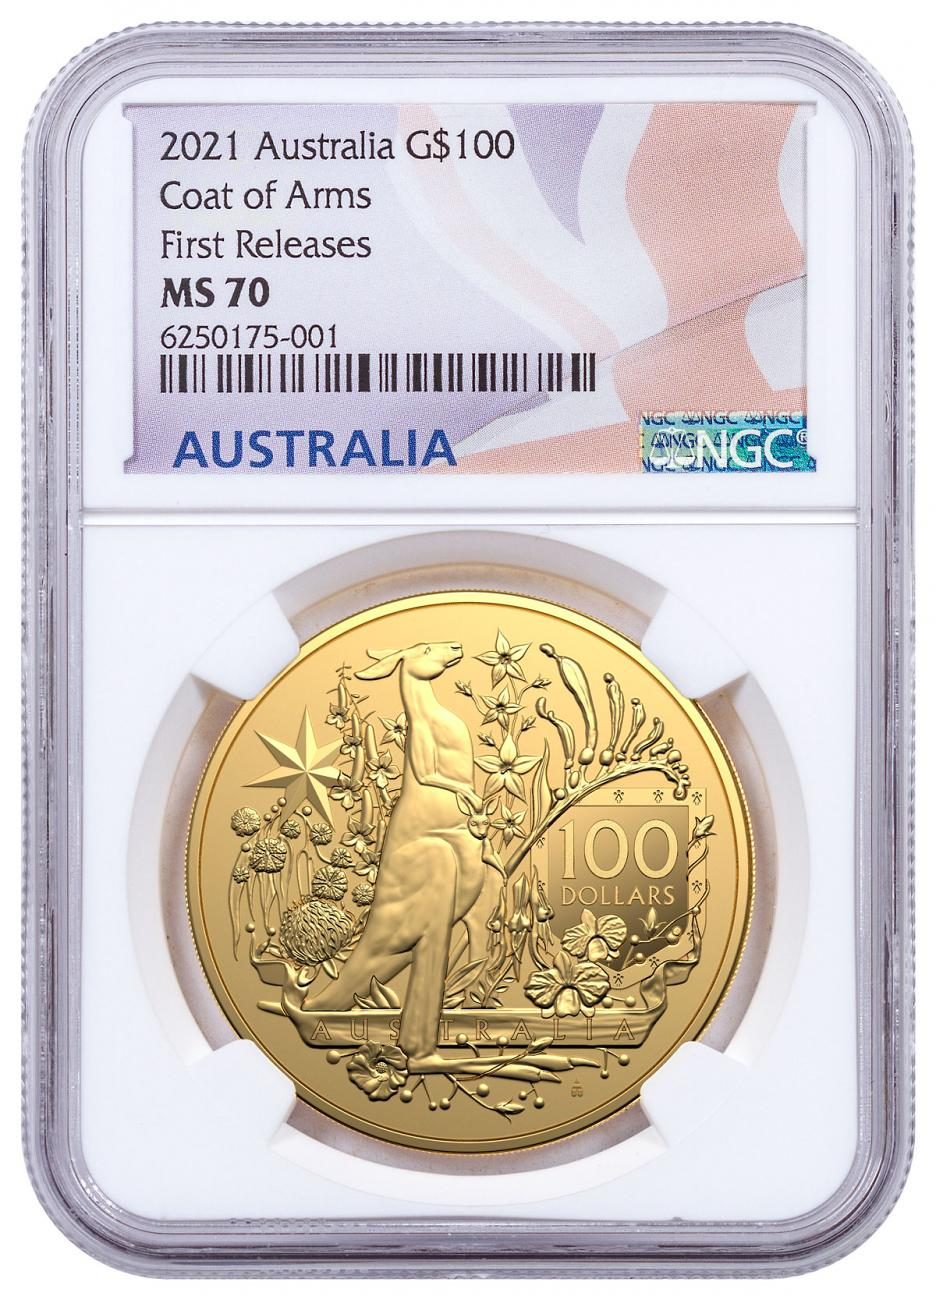 2021 Australia Coat of Arms 1 oz Gold $100 Coin NGC MS70 FR Flag Label